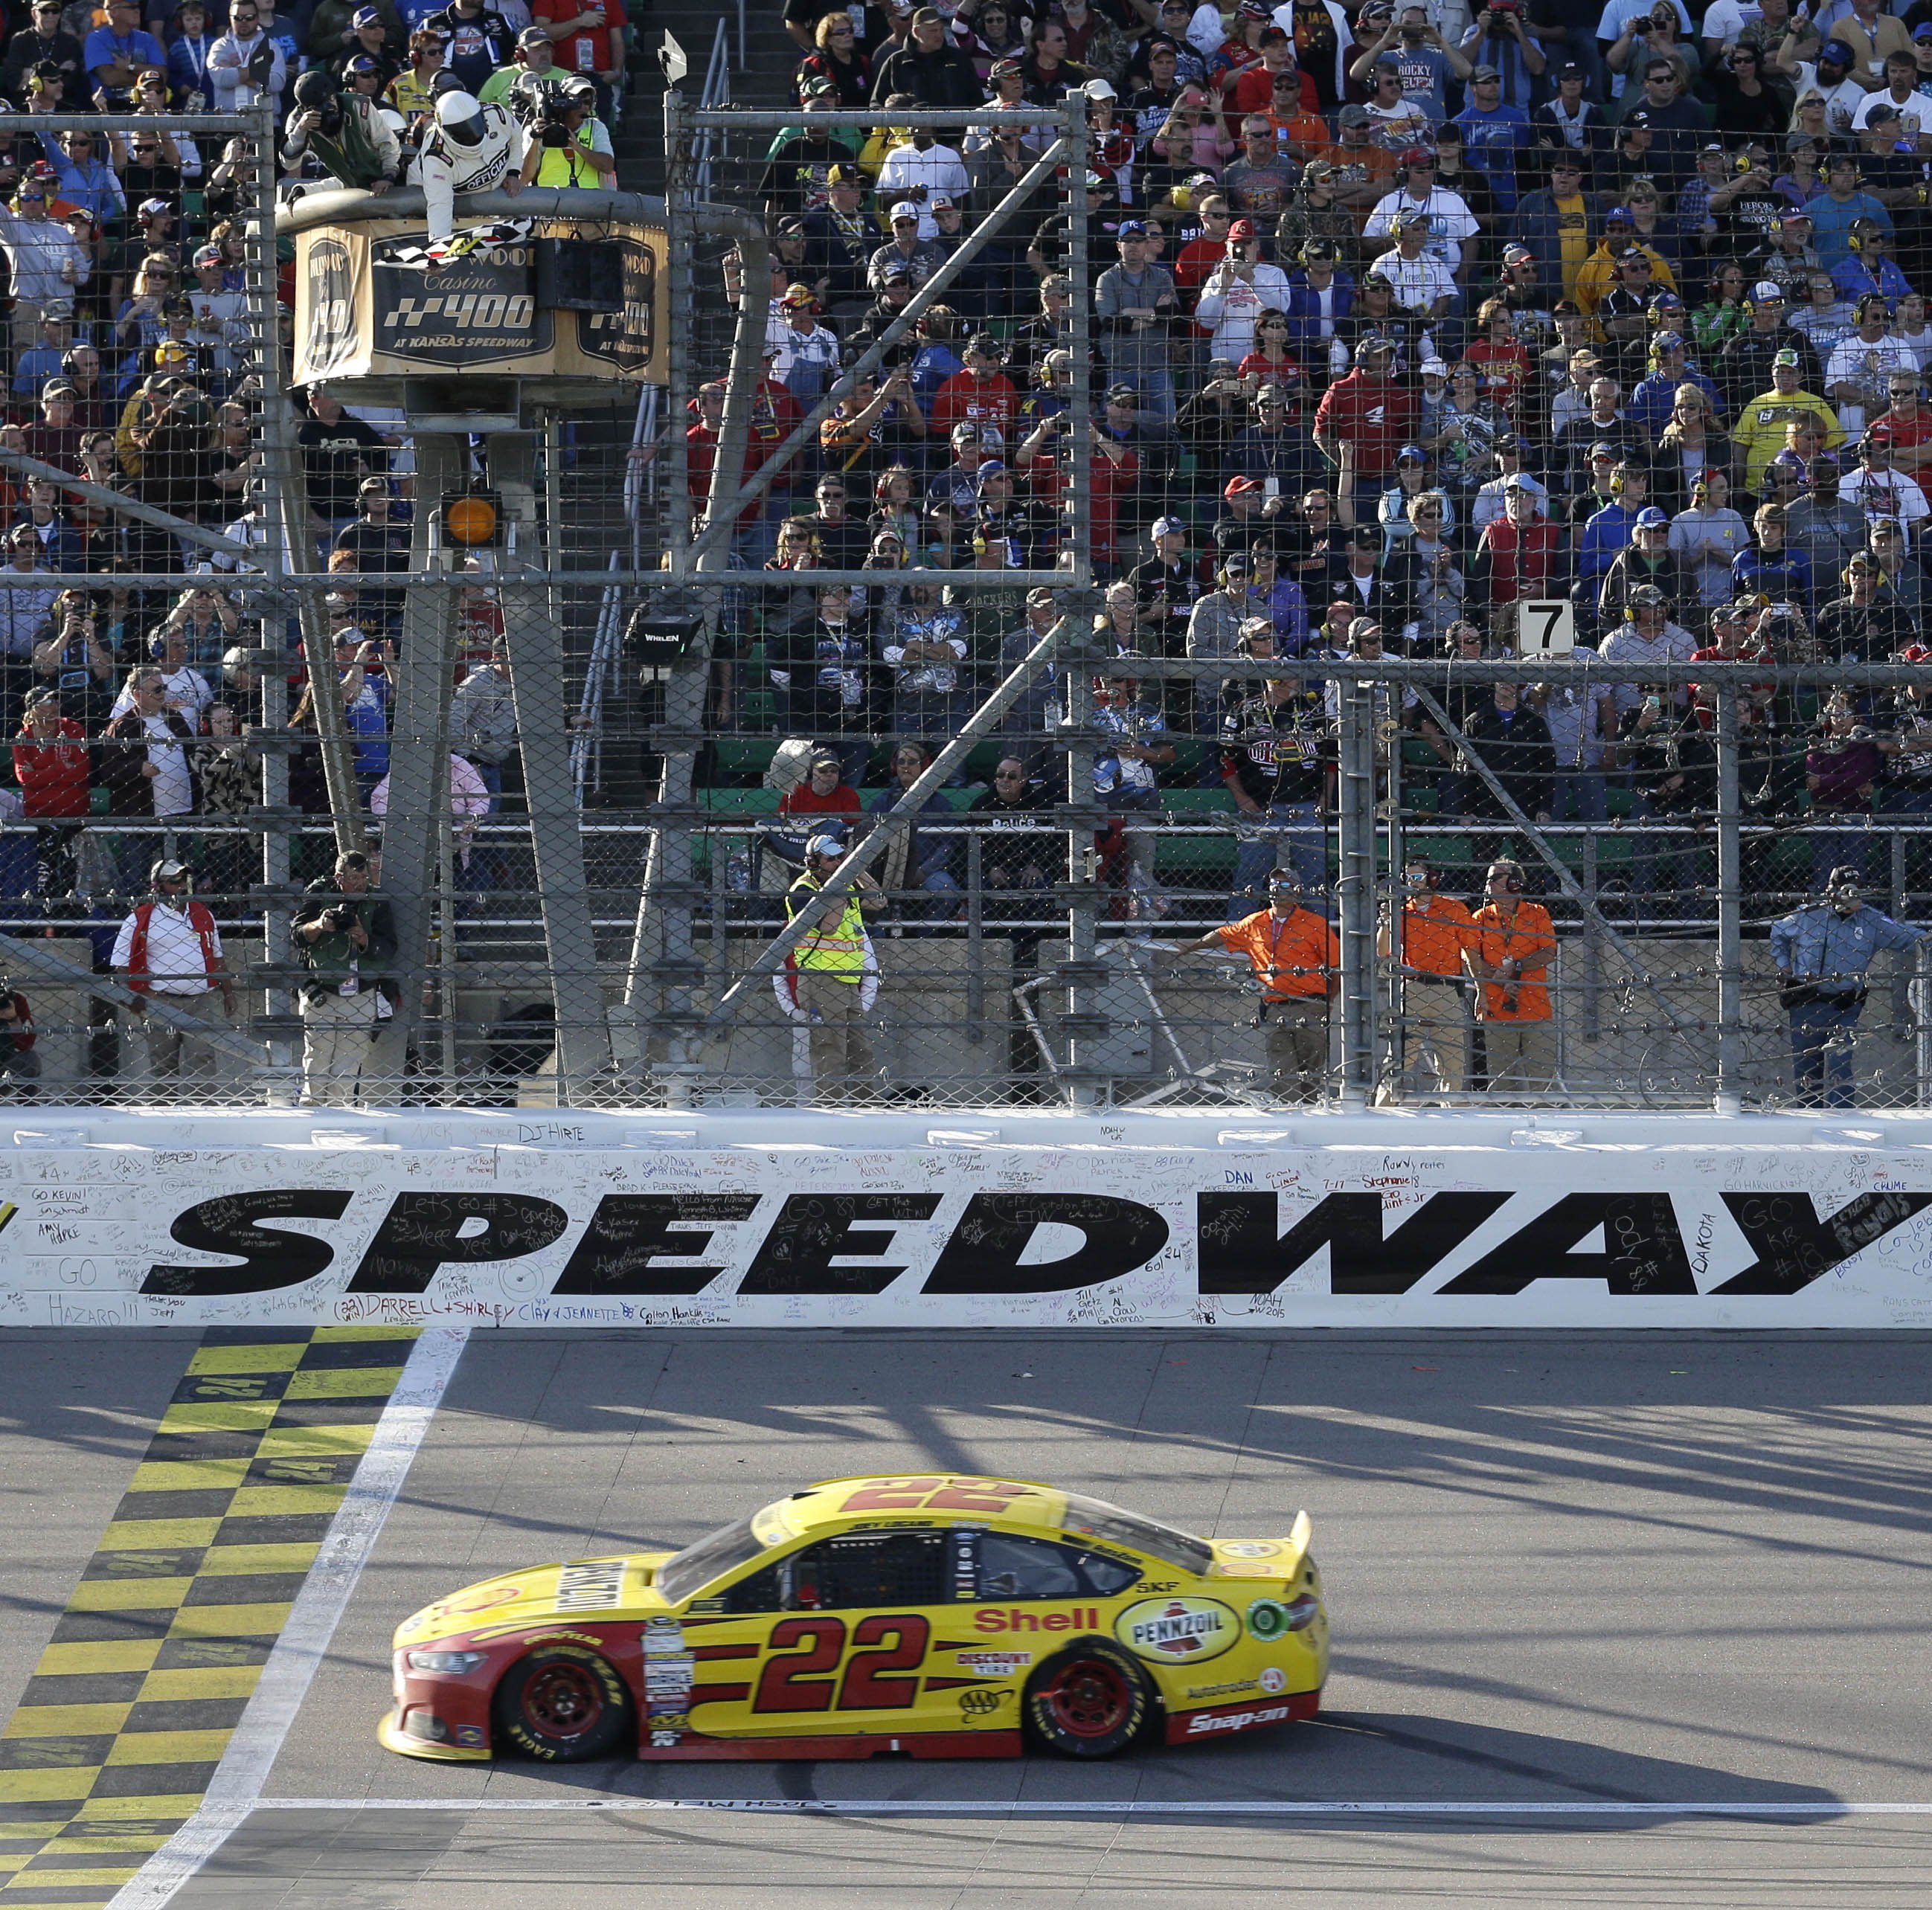 Sprint Cup Series driver Joey Logano (22) takes the checkered flag to win a NASCAR auto race at Kansas Speedway in Kansas City, Kan., Sunday, Oct. 18, 2015. (AP Photo/Orlin Wagner)